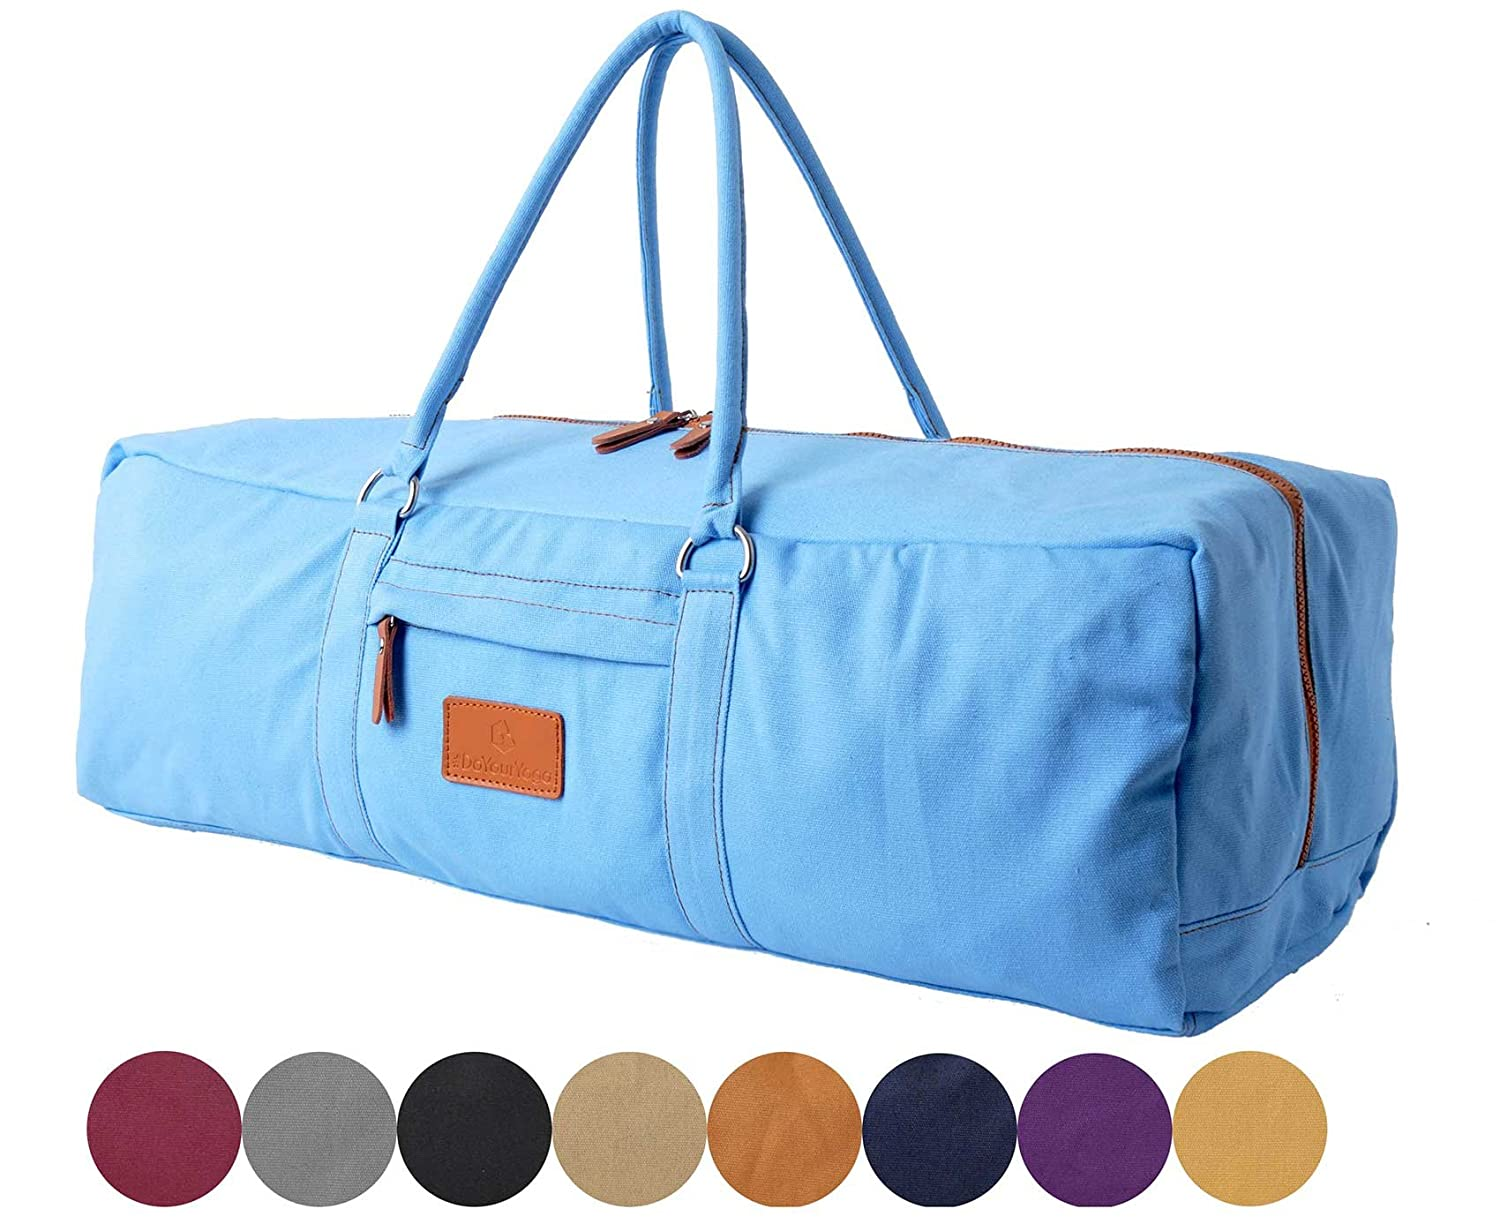 Yoga Mat Bag »Ghanpati« from #DoYourYoga / made of 100% fine canvas (sailcloth)- carry kit (multifunctional storage like towel, wallet ..) pilates fitness & aerobics mats up to a size of 186x62x1.5cm #DoYourSports